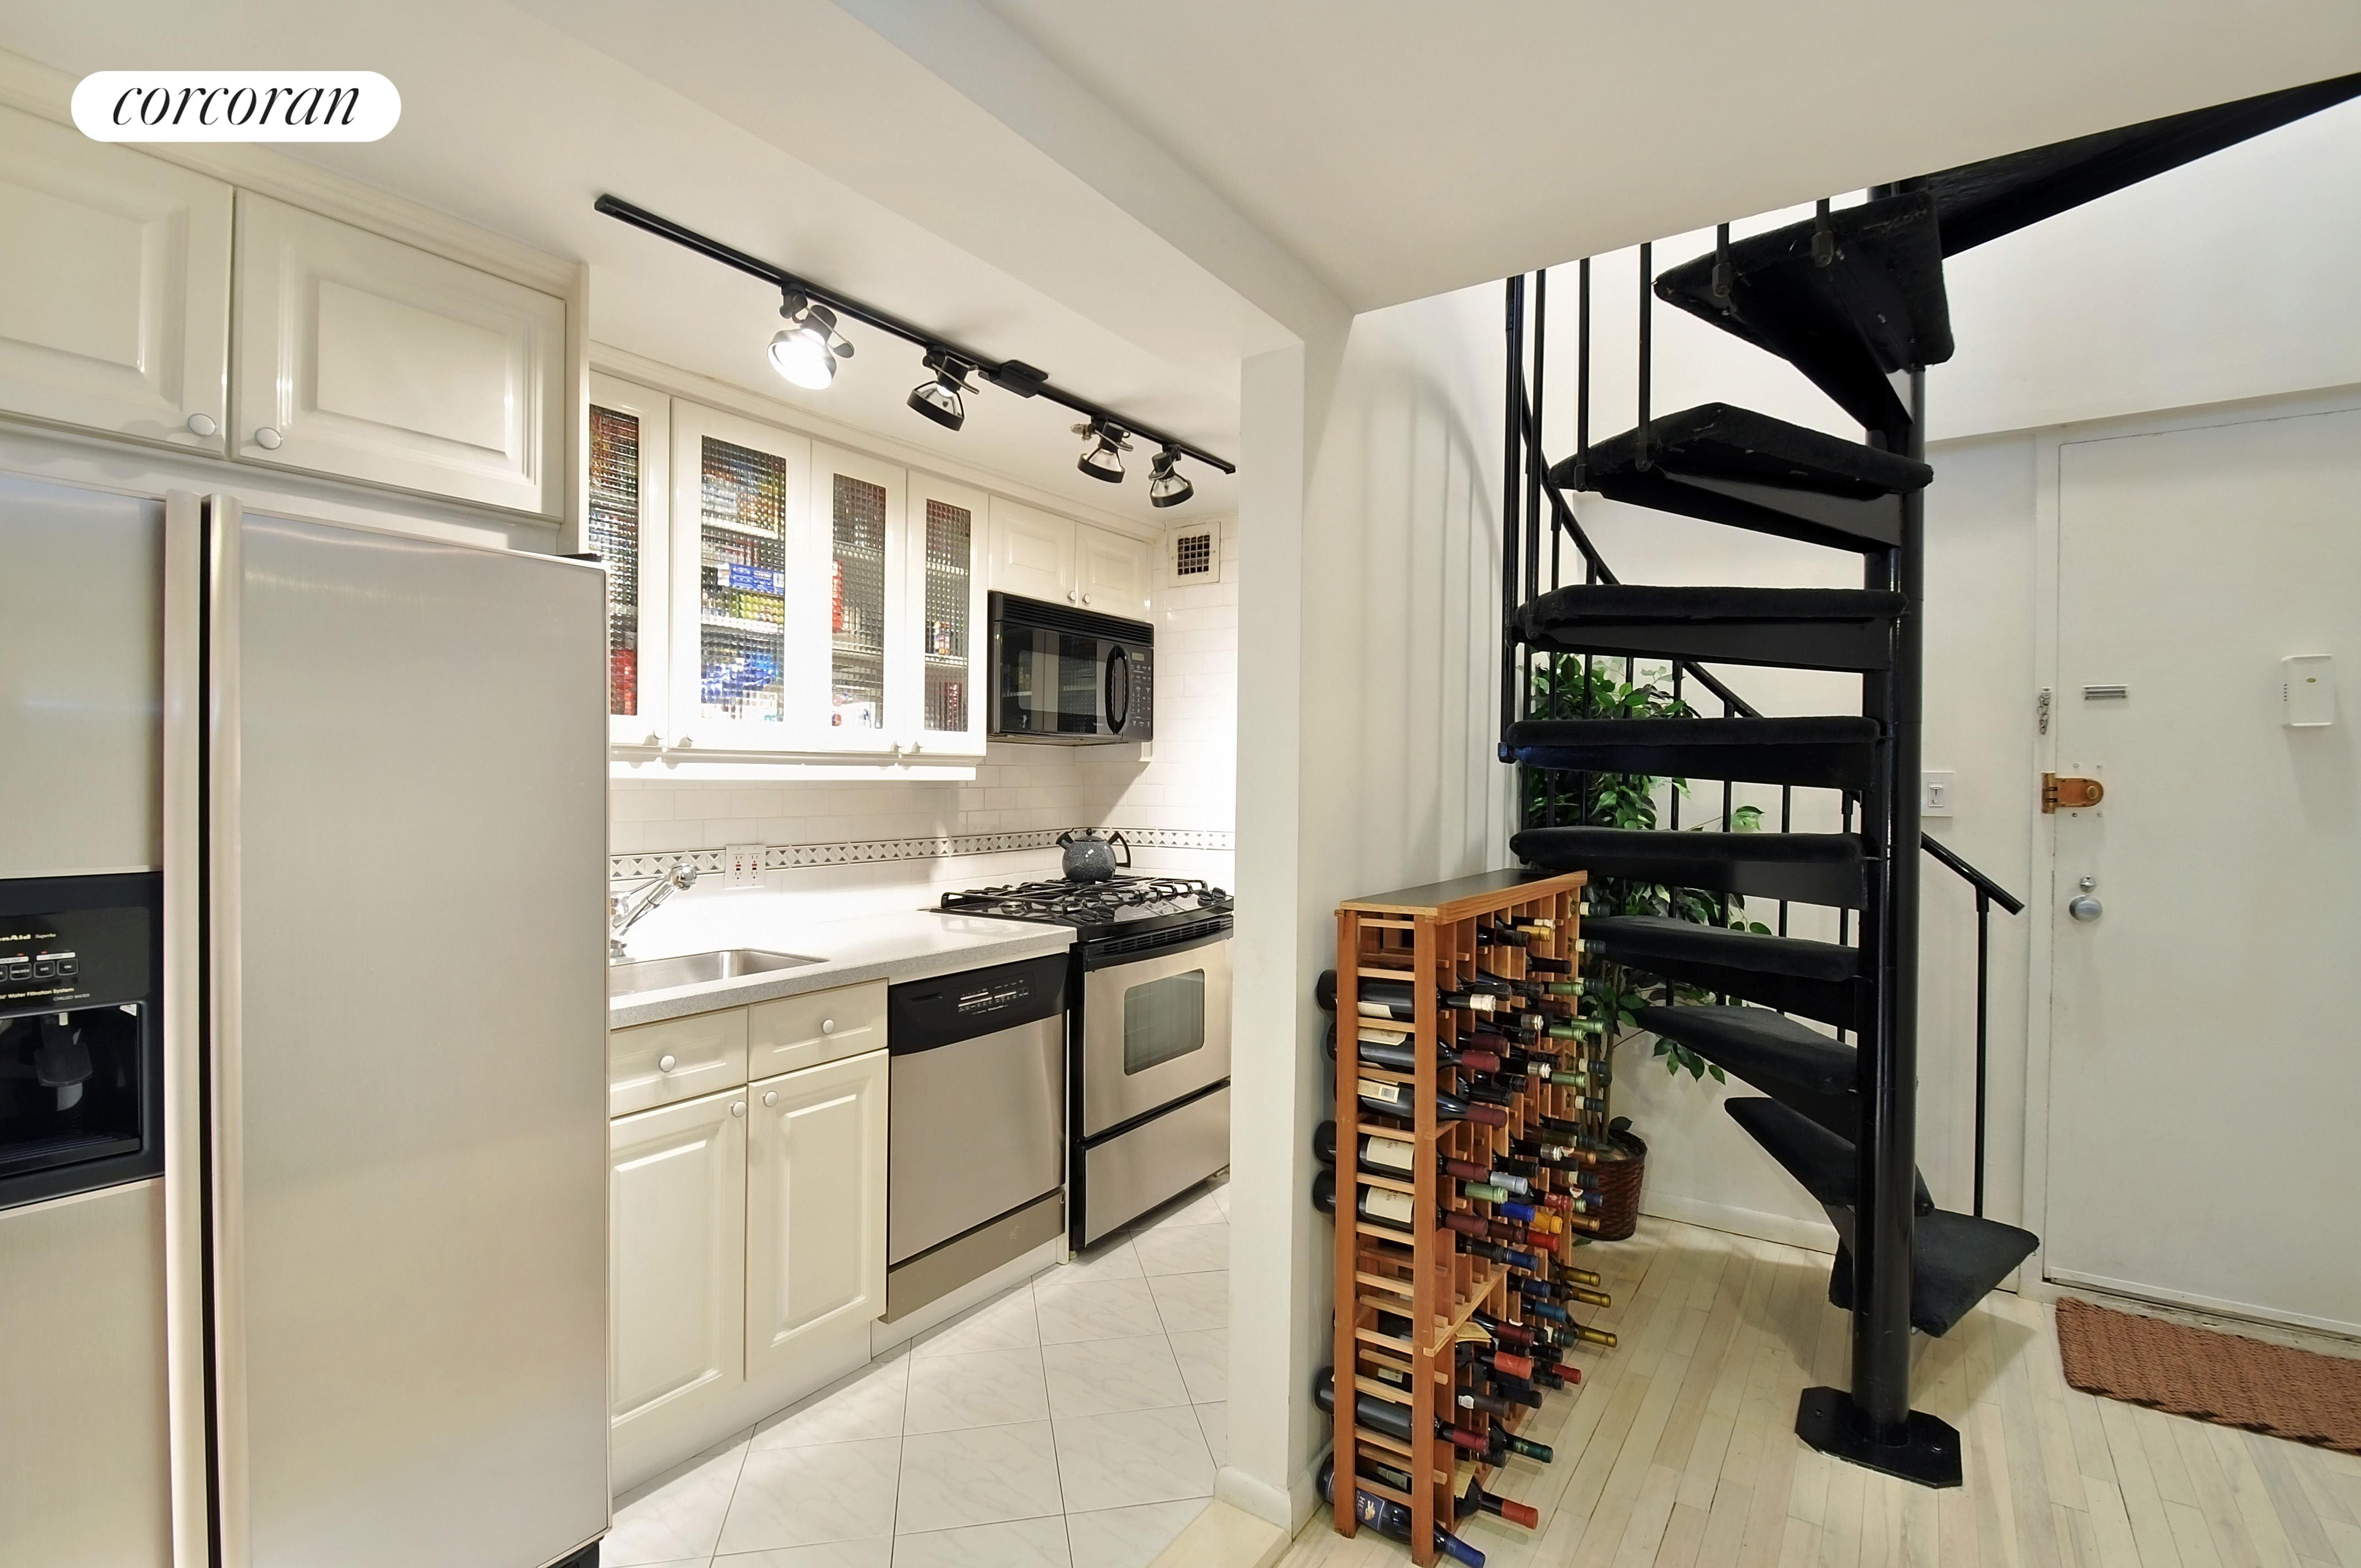 Corcoran, 67 East 11th Street, Apt. 702, Greenwich Village Real ...